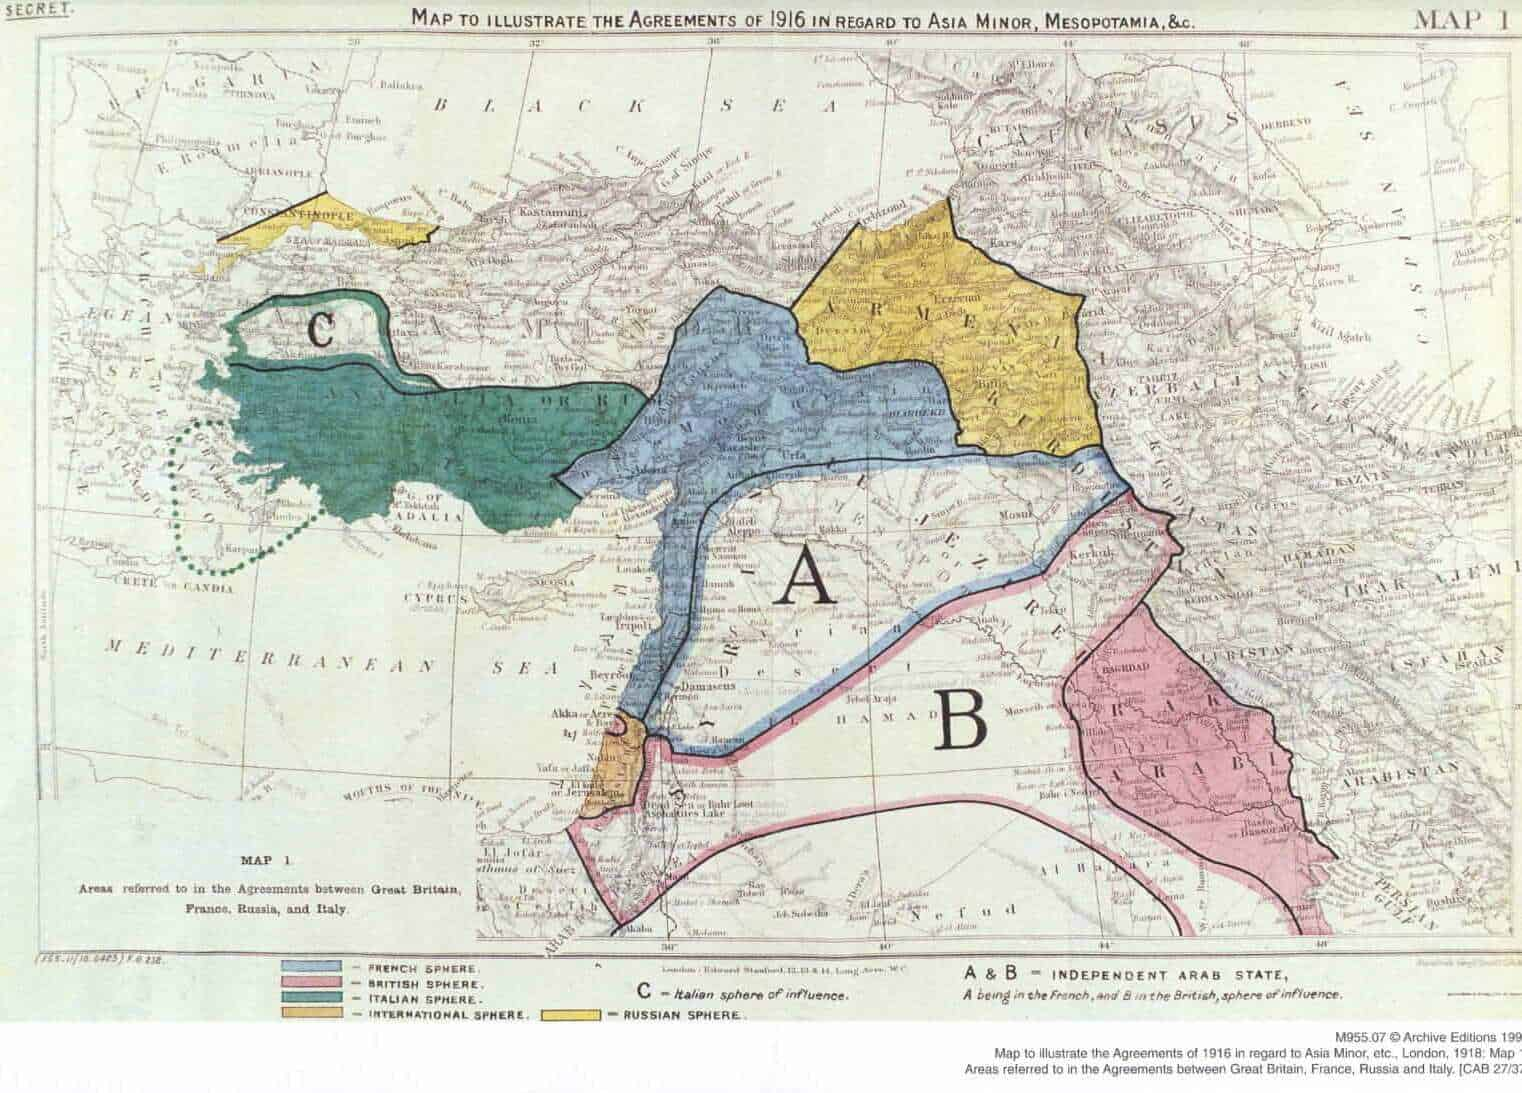 The infamous map of the Sykes Picot Agreement, leaked by Communist Russia.